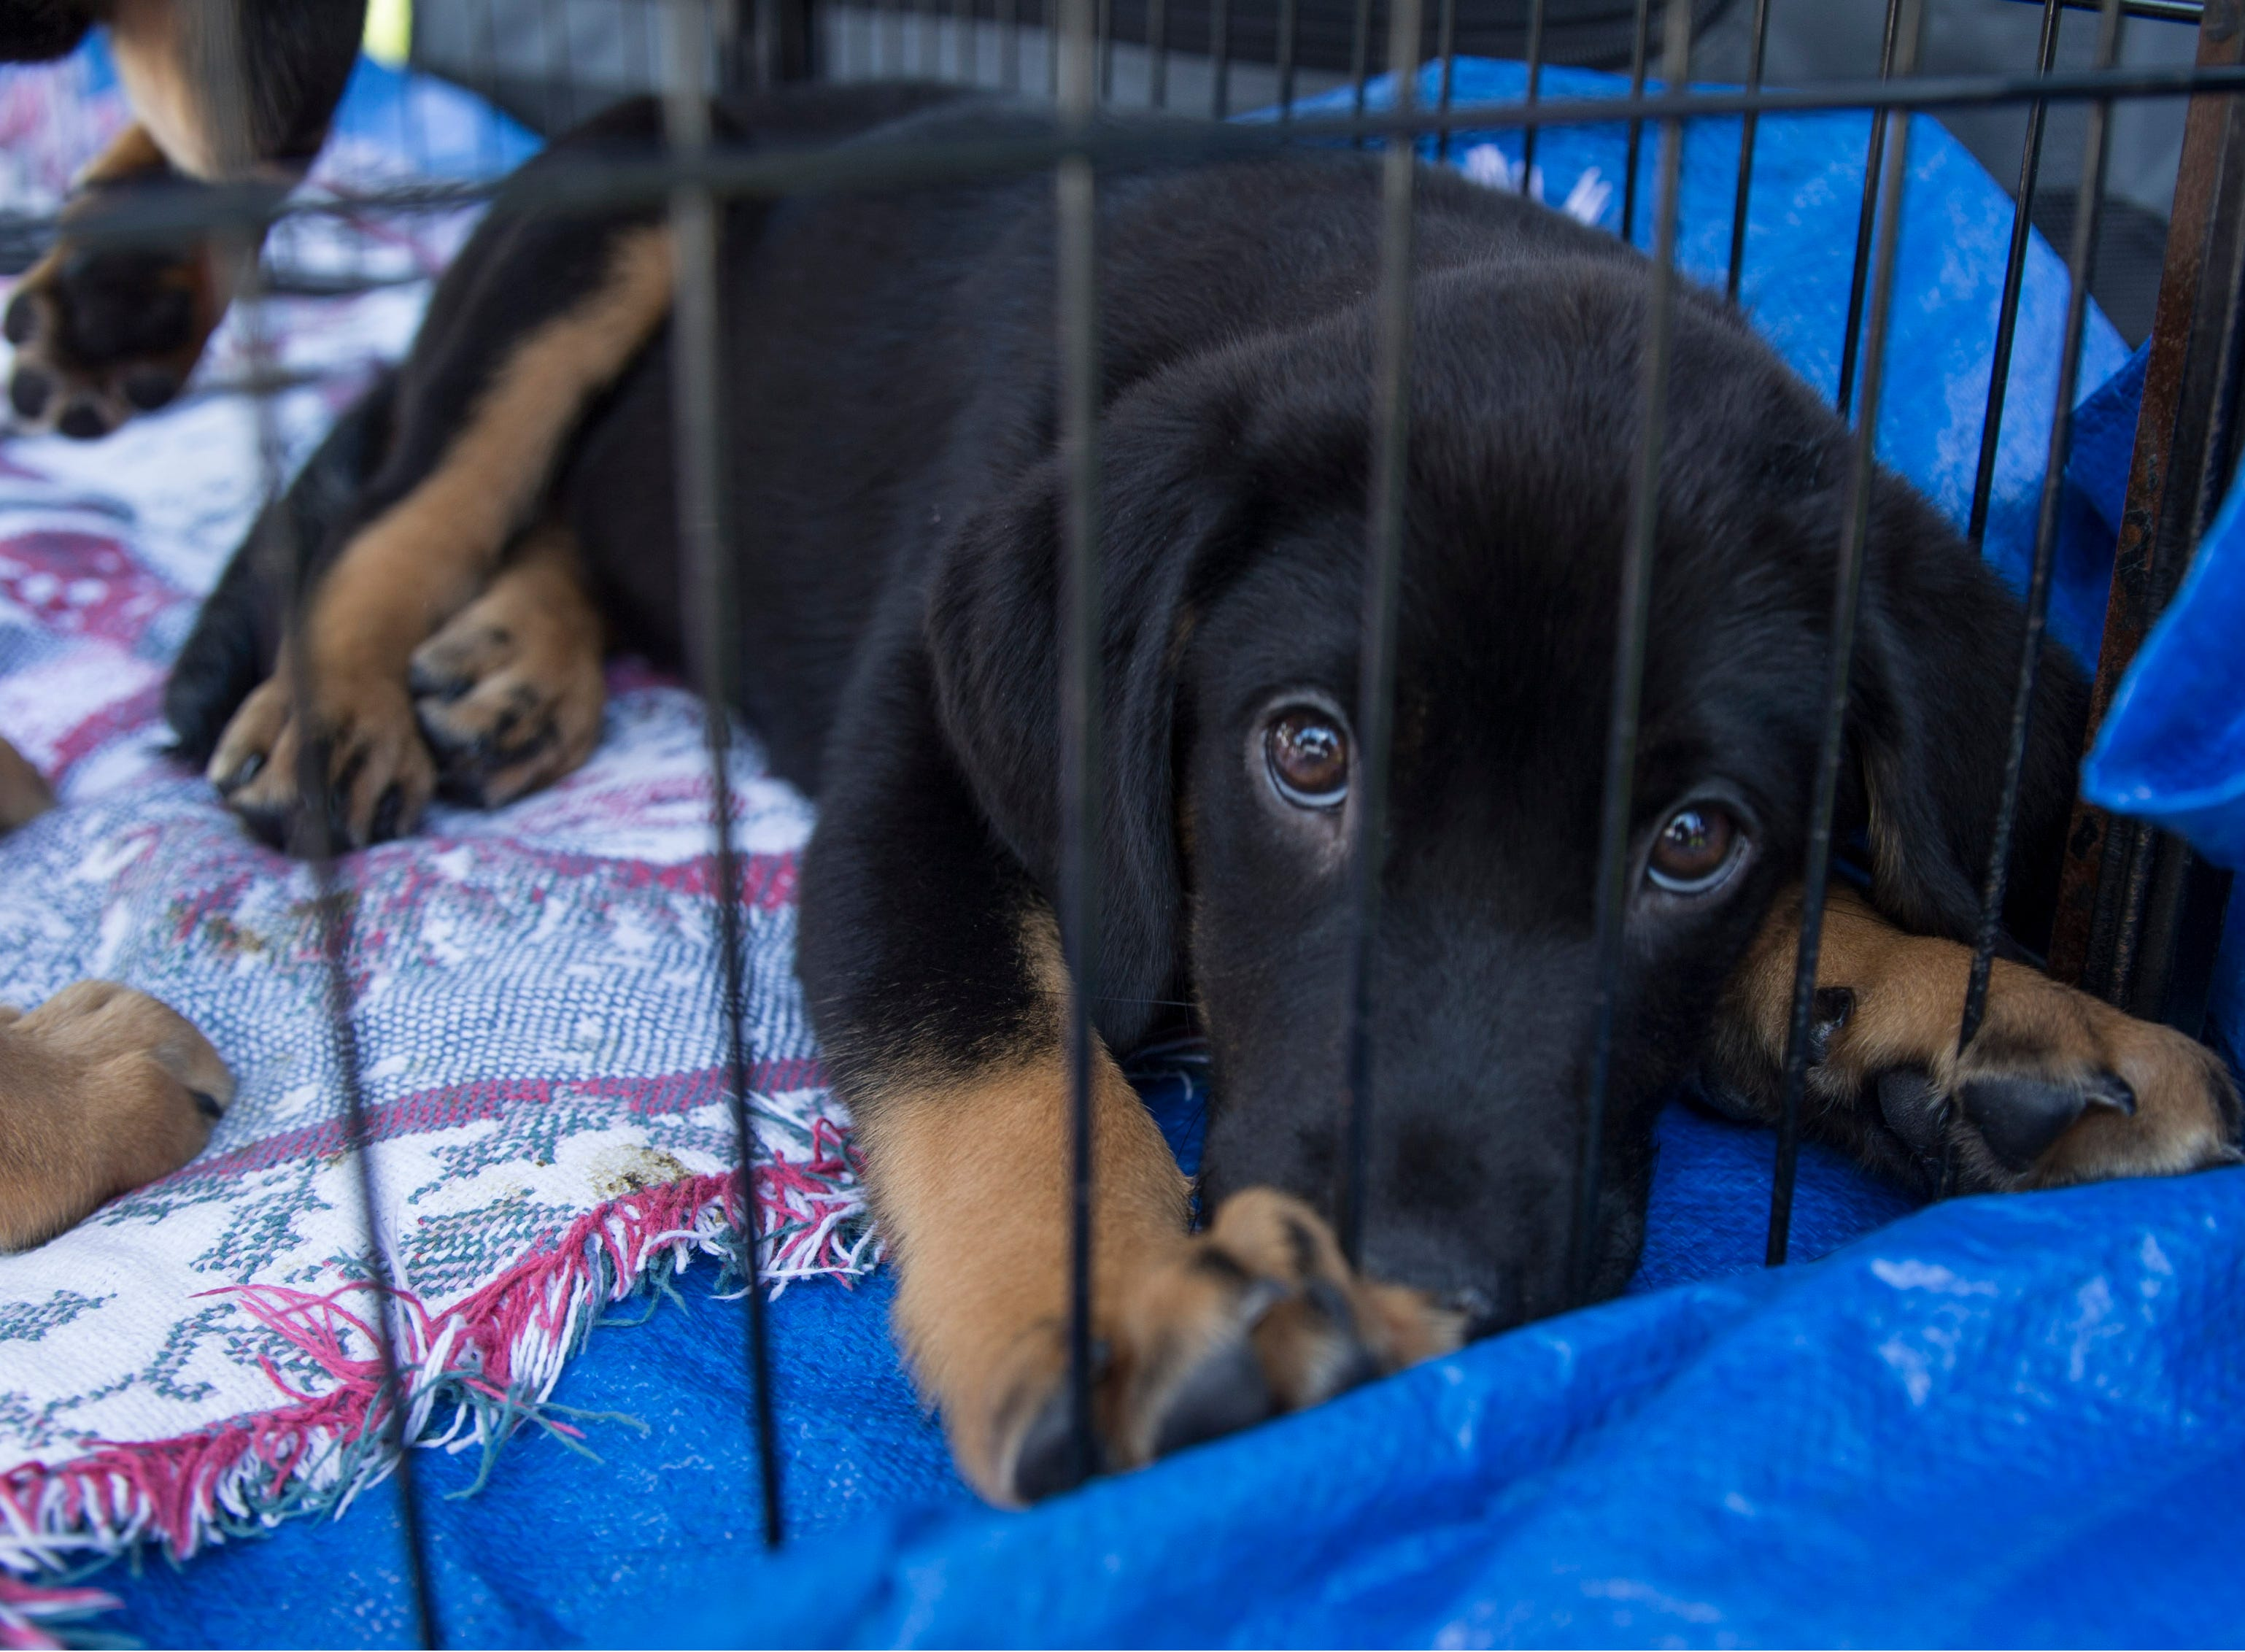 """Puppies available for adoption through Puppy Love Pet Rescue. Lakewood BlueClaws Bark in the Park takes place on stadium grounds prior to the game. Dogs were also allowed to attend the game with a """"pooch pass"""". Many adoption agencies were on hand offering dogs looking for homes to qualified humans. Lakewood, NJSaturday, May 11, 2019"""